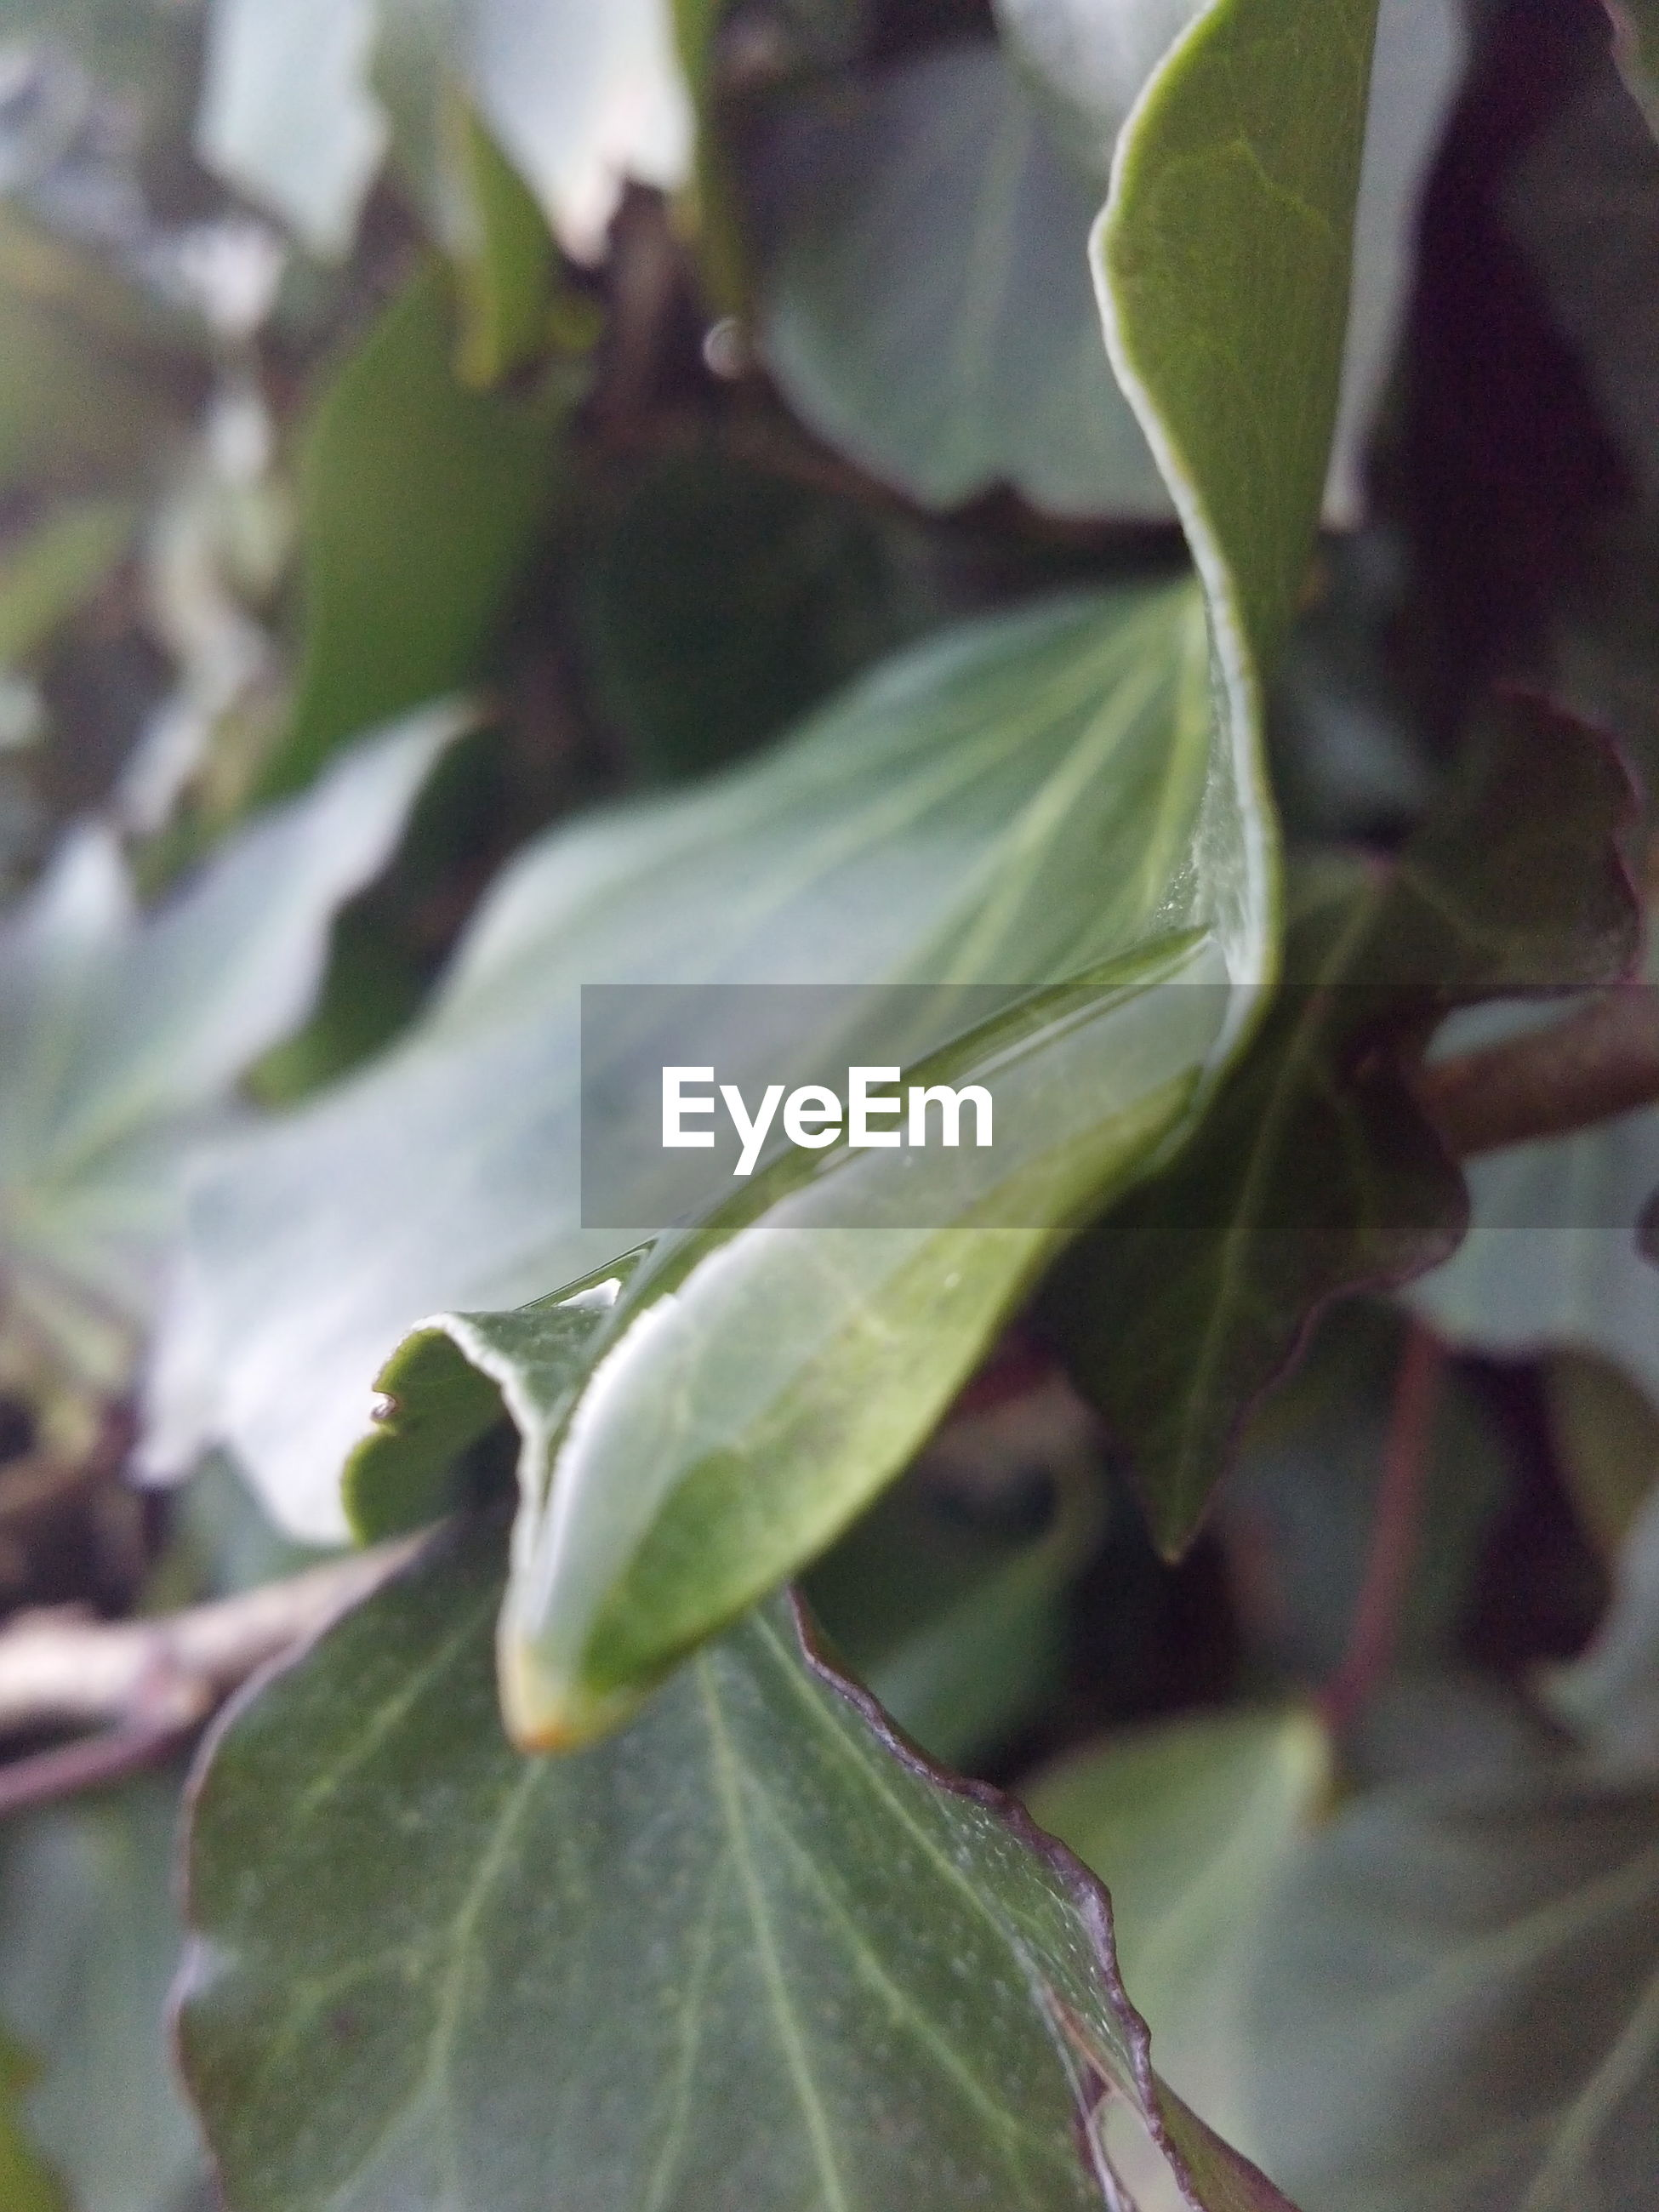 leaf, close-up, focus on foreground, growth, green color, plant, nature, freshness, selective focus, beauty in nature, new life, day, stem, outdoors, beginnings, no people, bud, branch, fragility, green